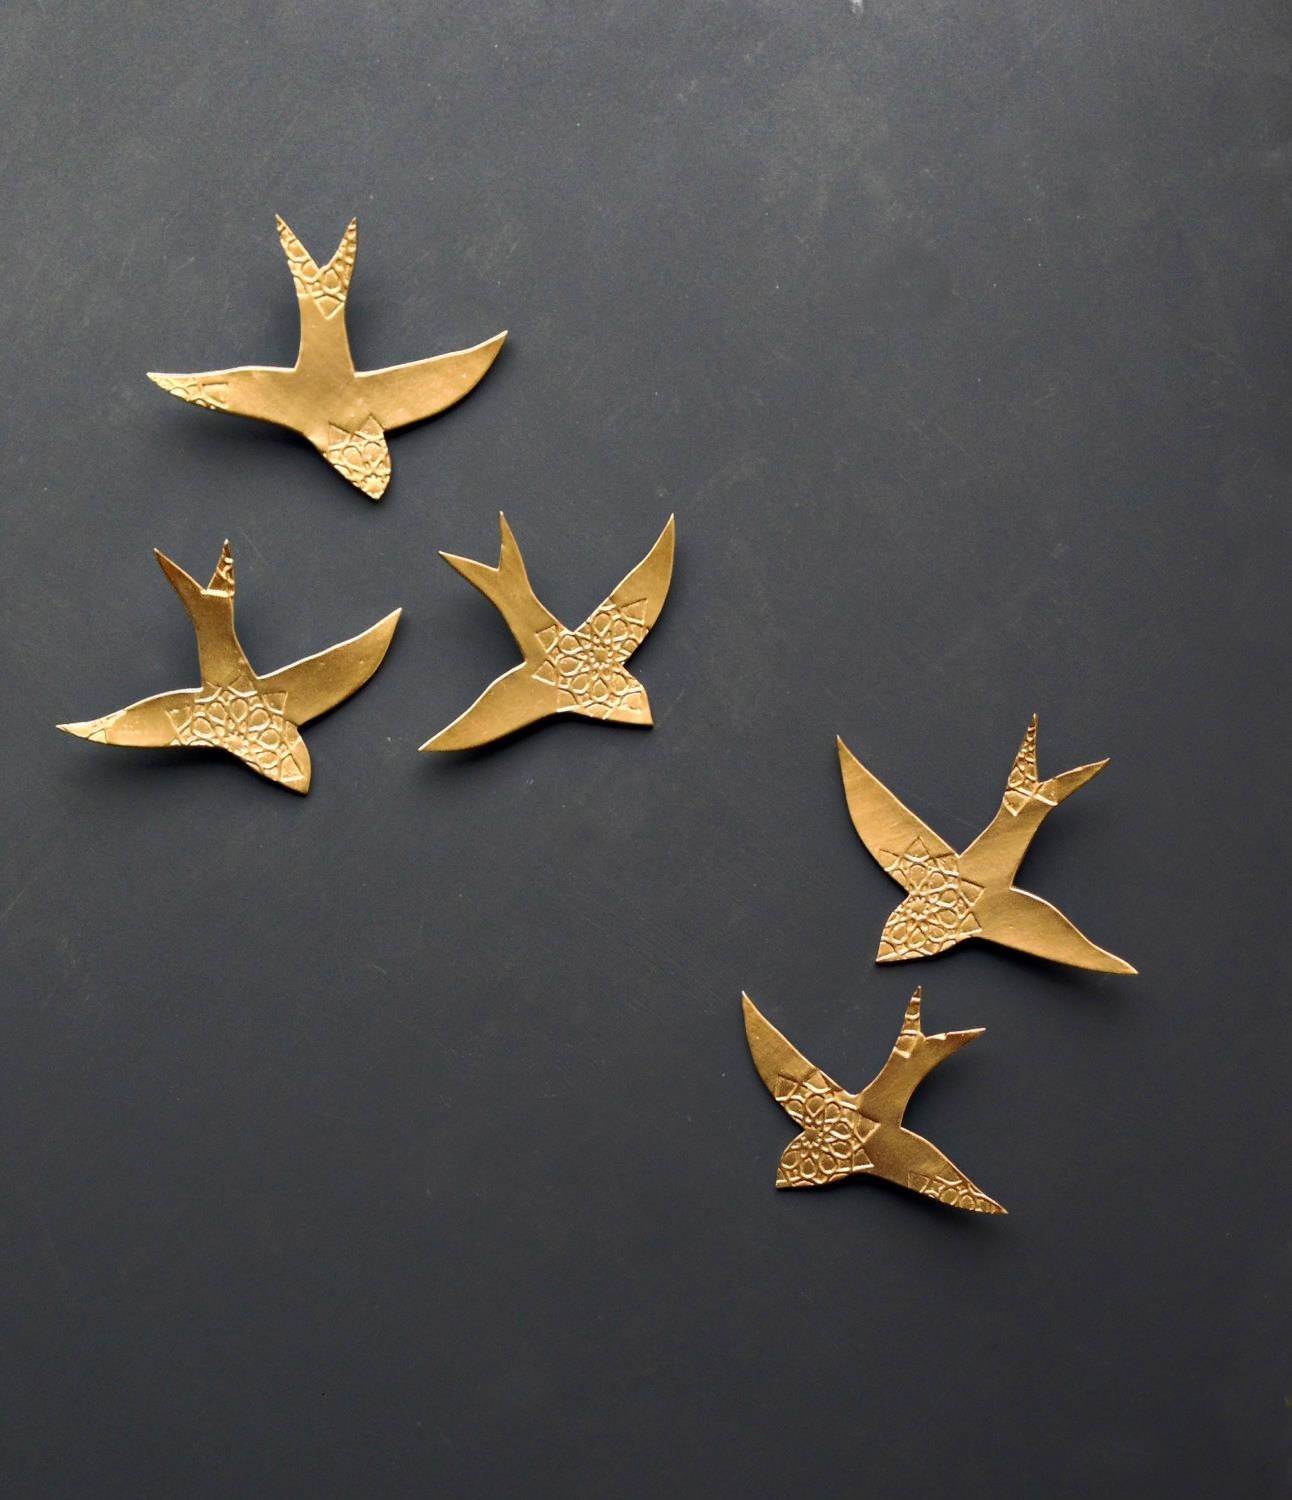 Wall Art Swallows Over Morocco Gold Birds Wall Sculpture In Ceramic Bird Wall Art (View 9 of 20)